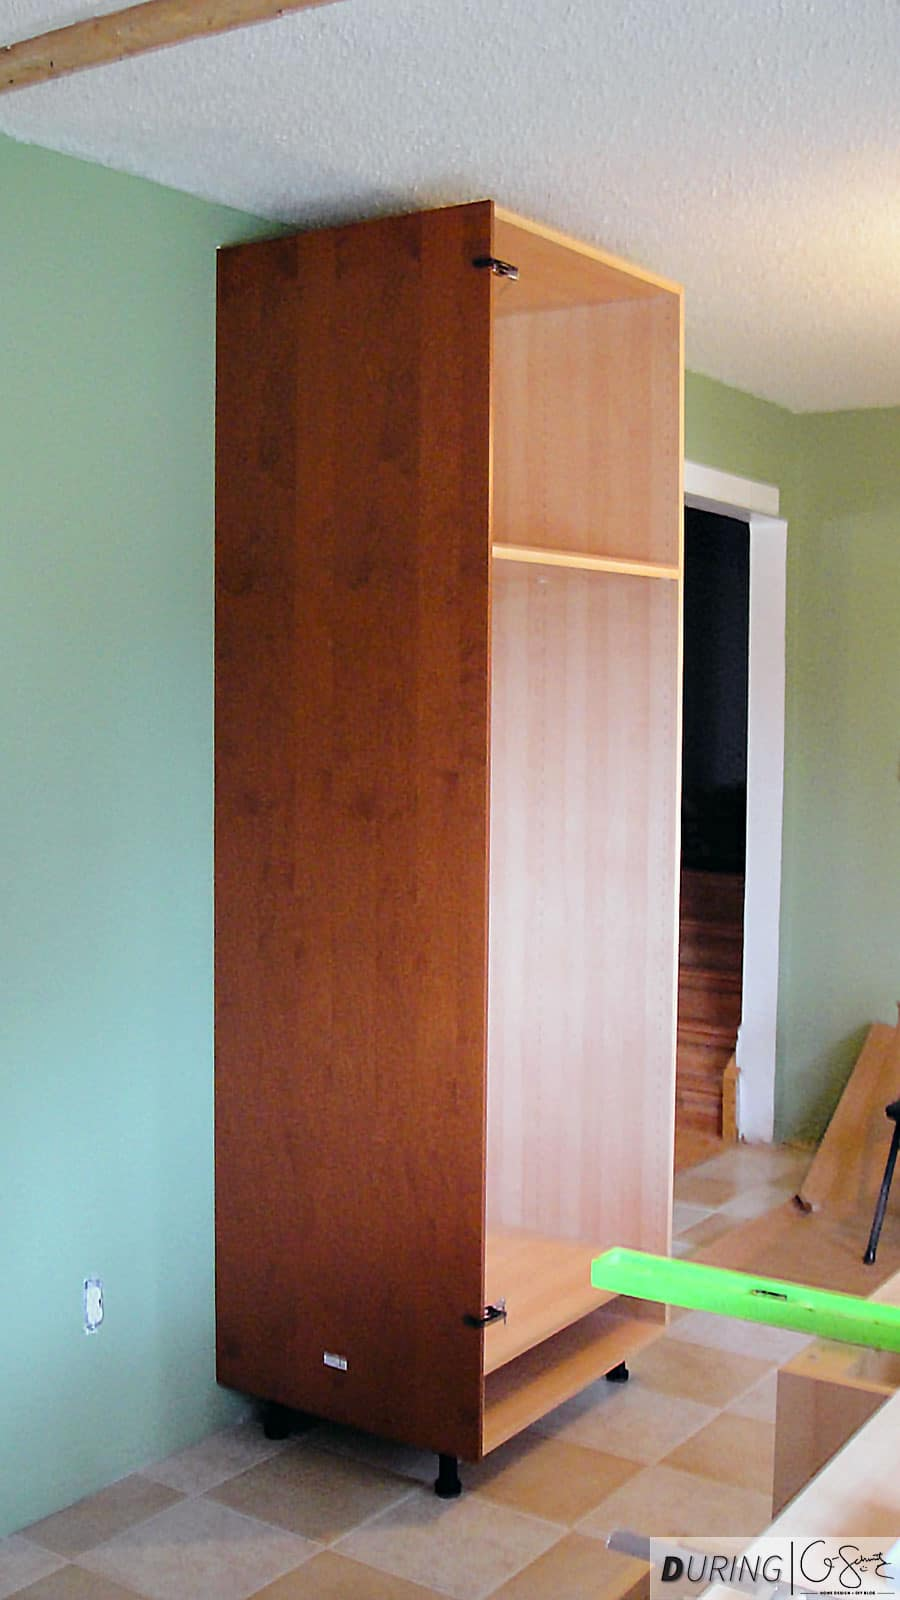 Kitchen Cabinet Installation Guide Installing Ikea Wall Cabinets Madness Method